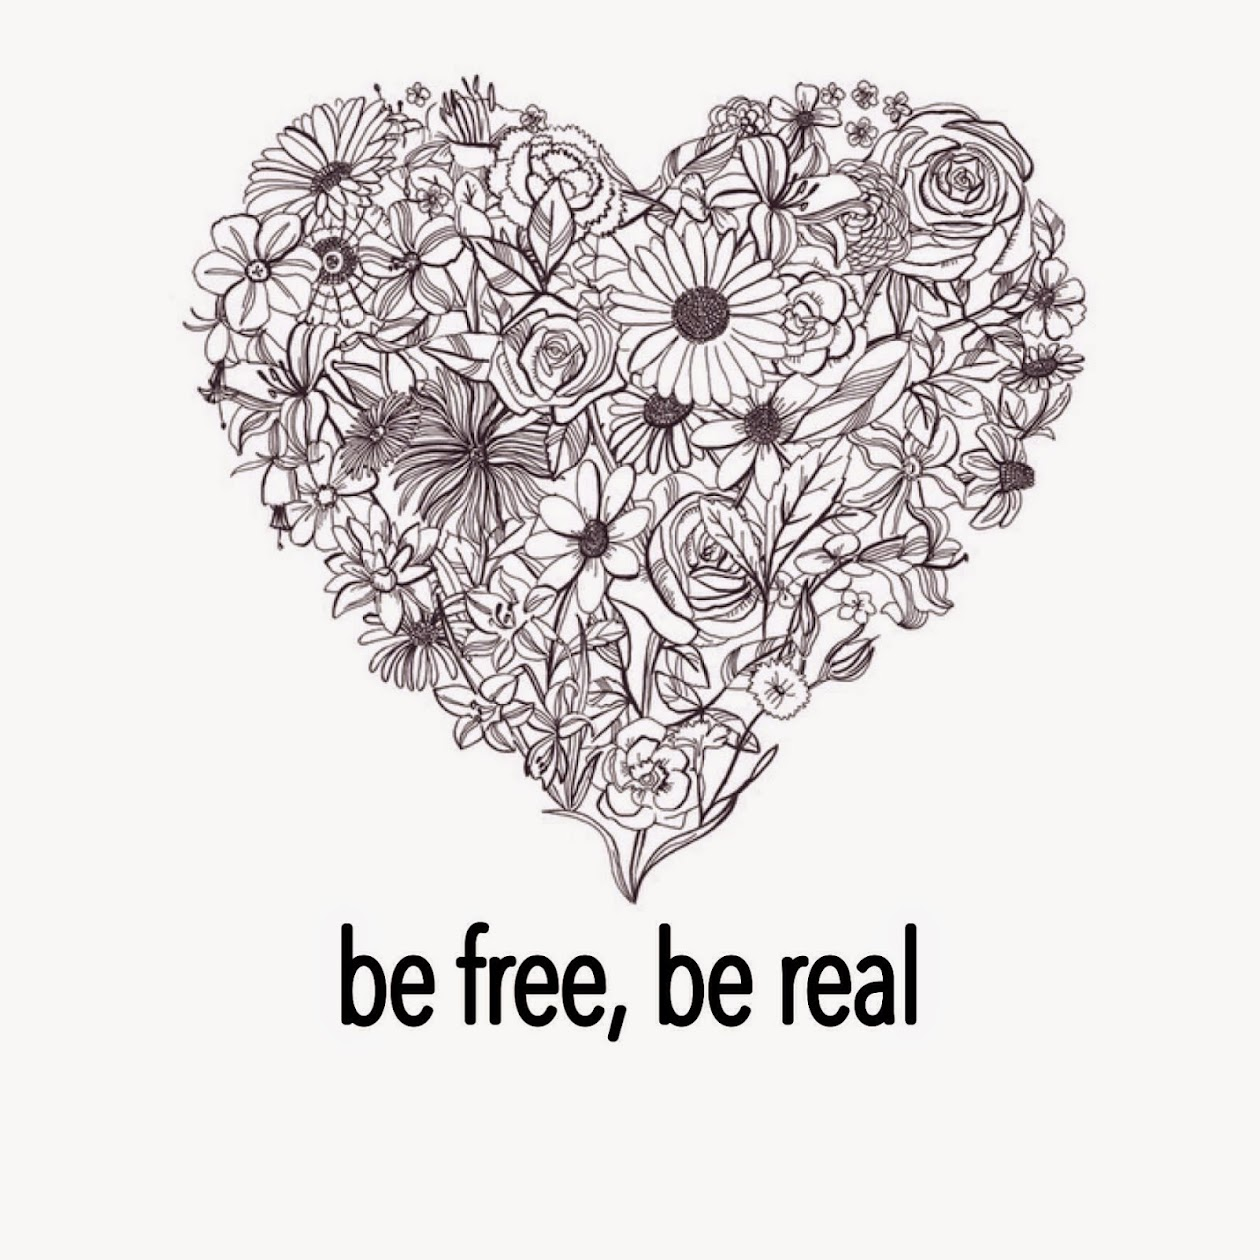 be free, be real